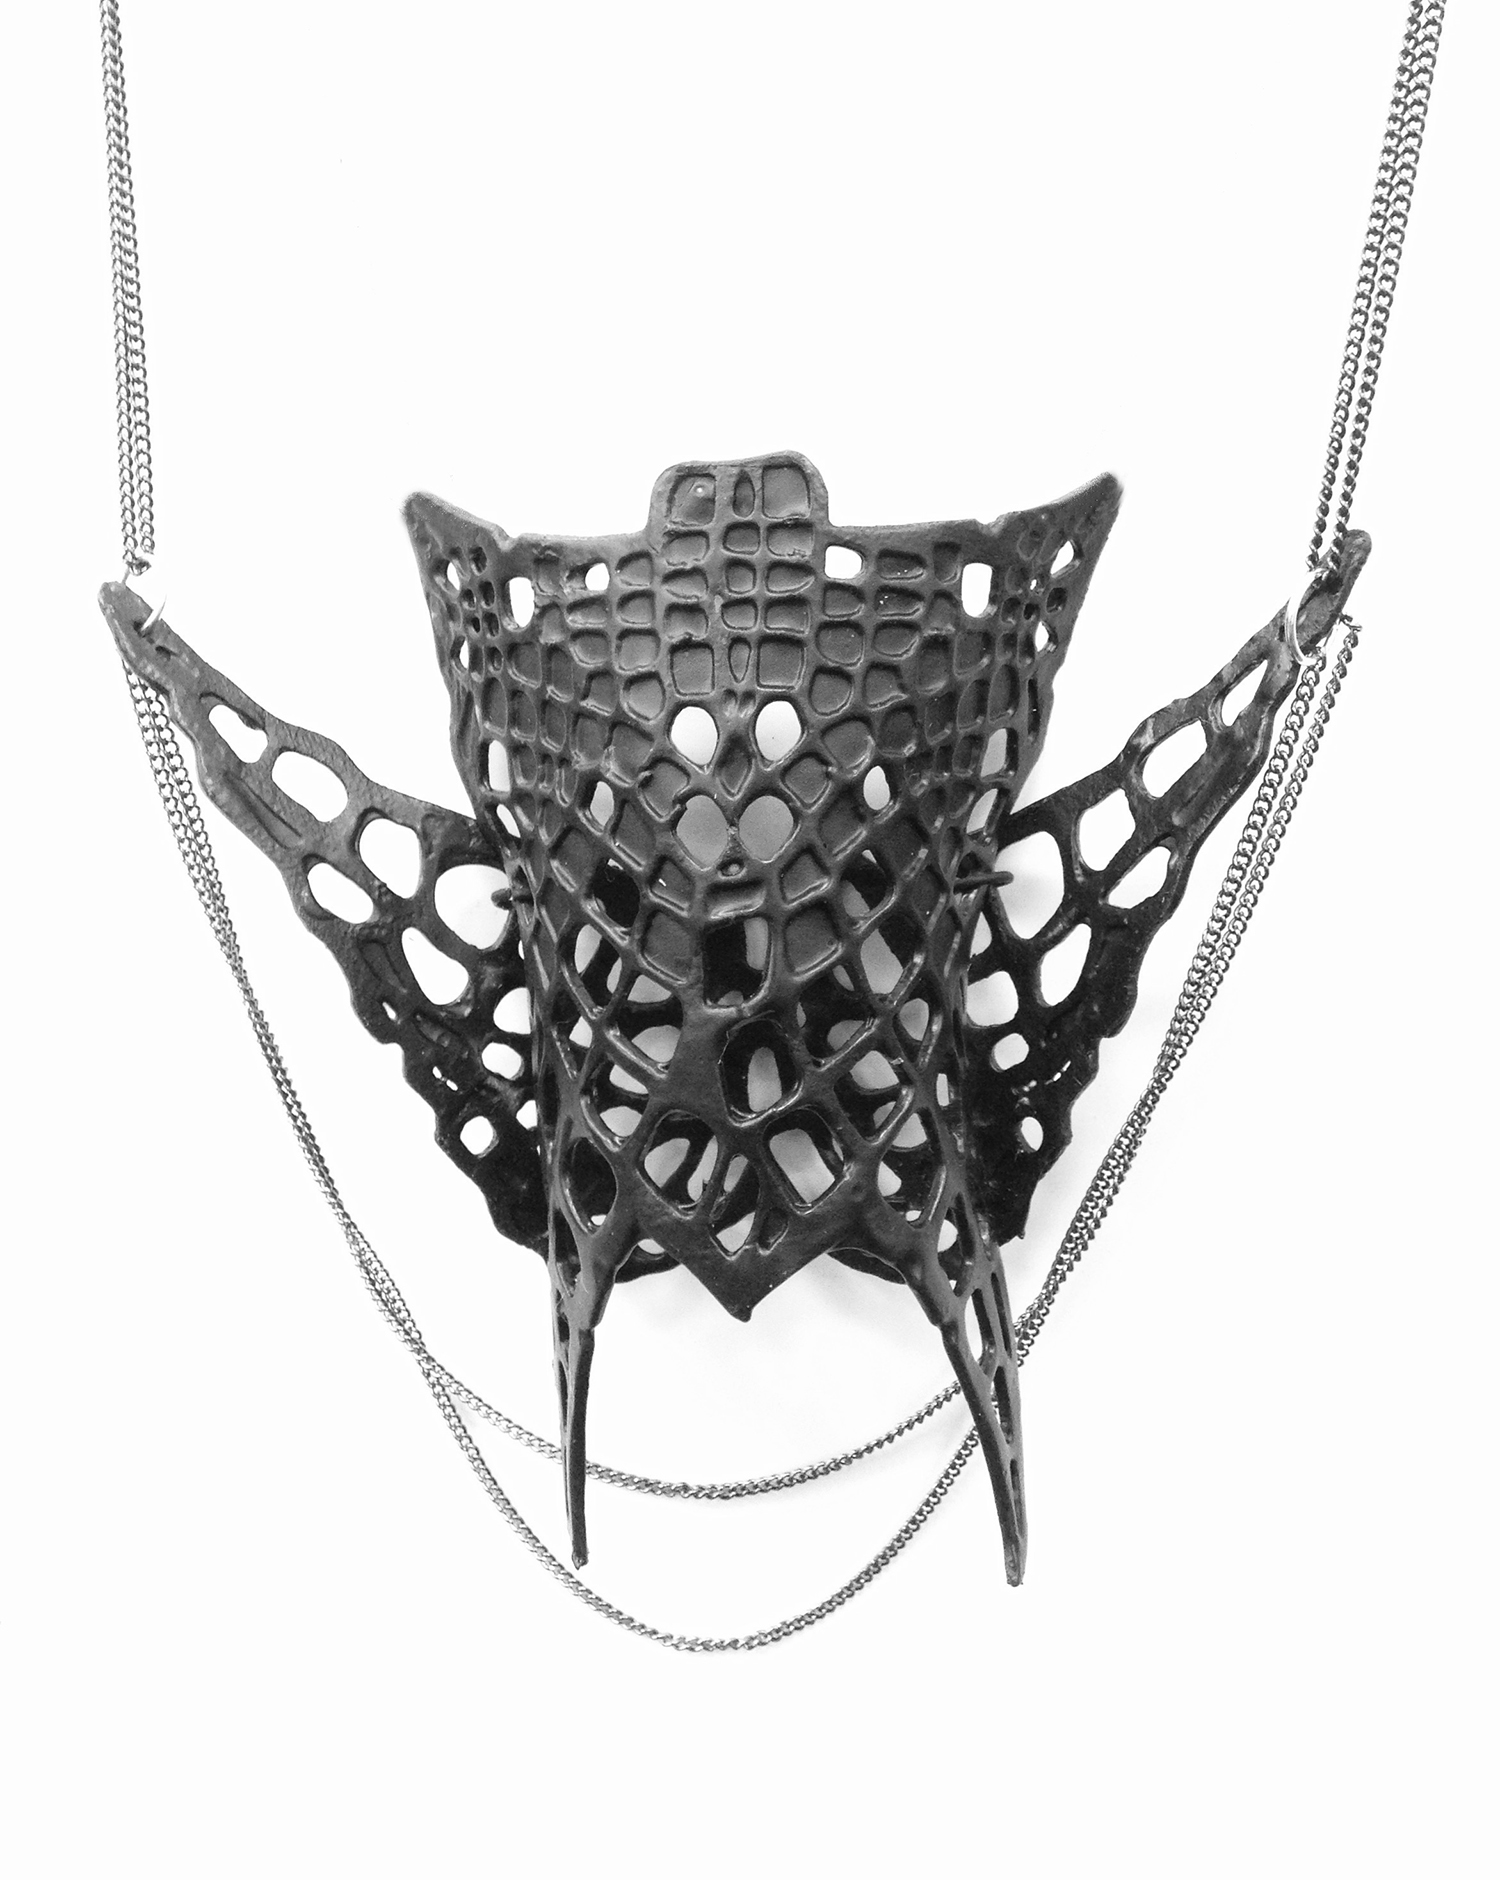 Skin  , 1 of 5 in a series  Tamar Navama, 2015  Various sizes, set of 5  Silver, plastic, paper, iron; gold mesh, goldfield